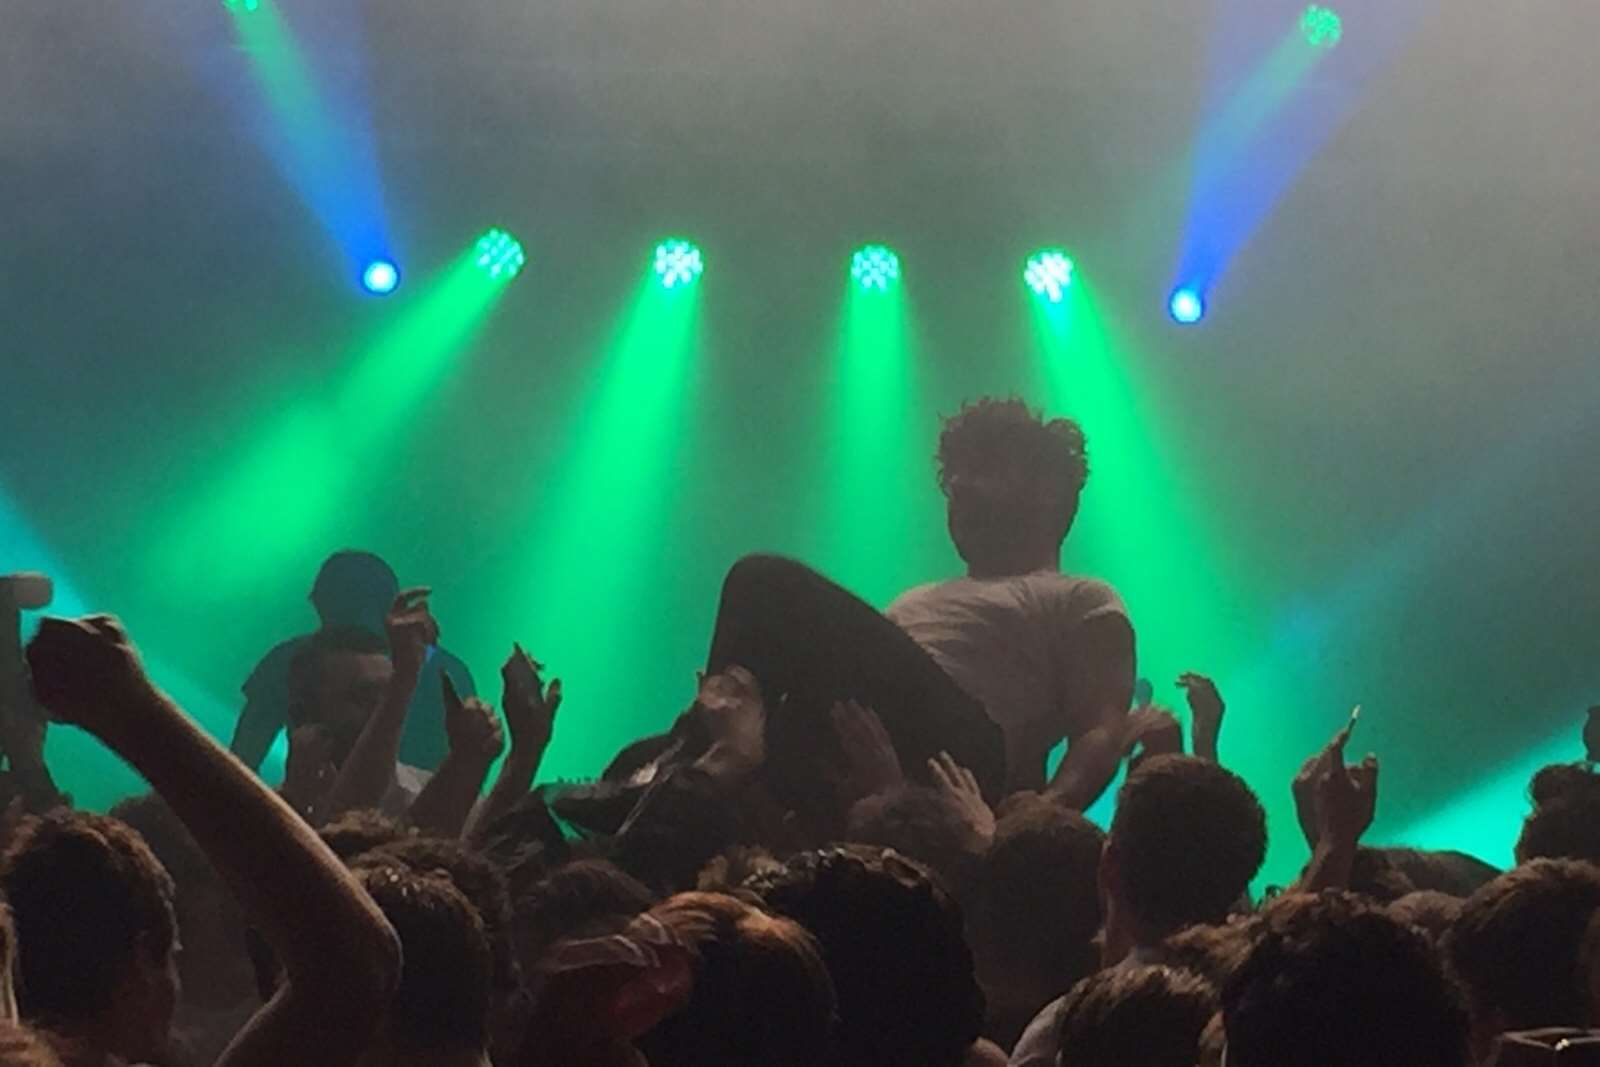 Foals frontman Yannis Philippakis enjoyed three crowdsurfing jaunts. Picture: Nick Chipperfield